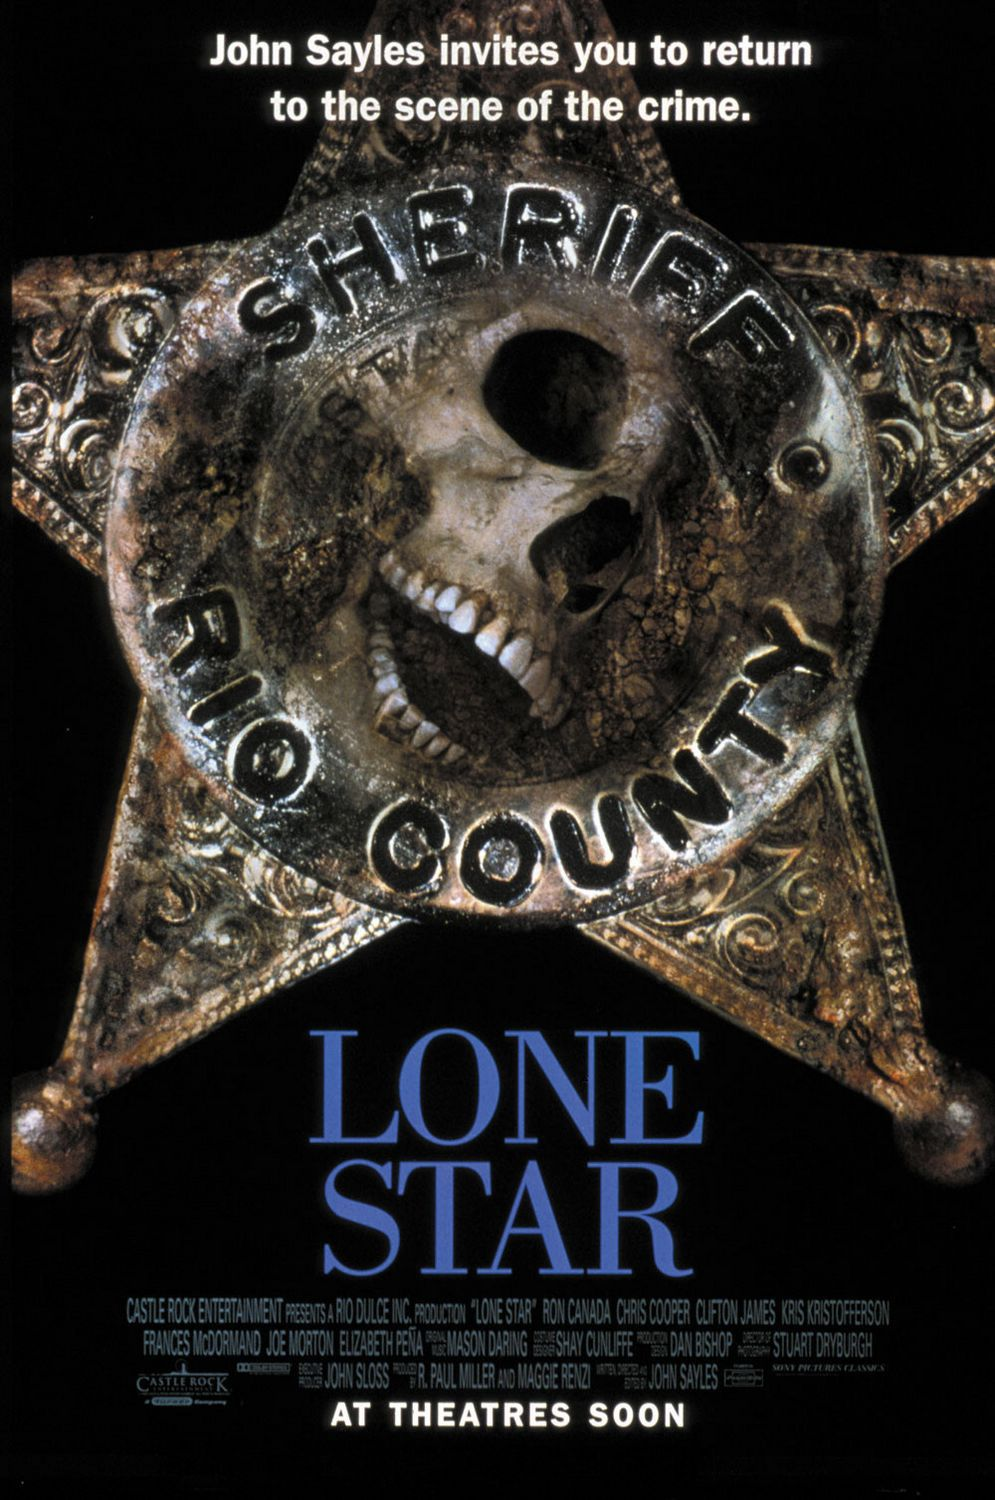 Lone Star (1996) by John Sayles - Cast: Matthew McConaughey - film poster